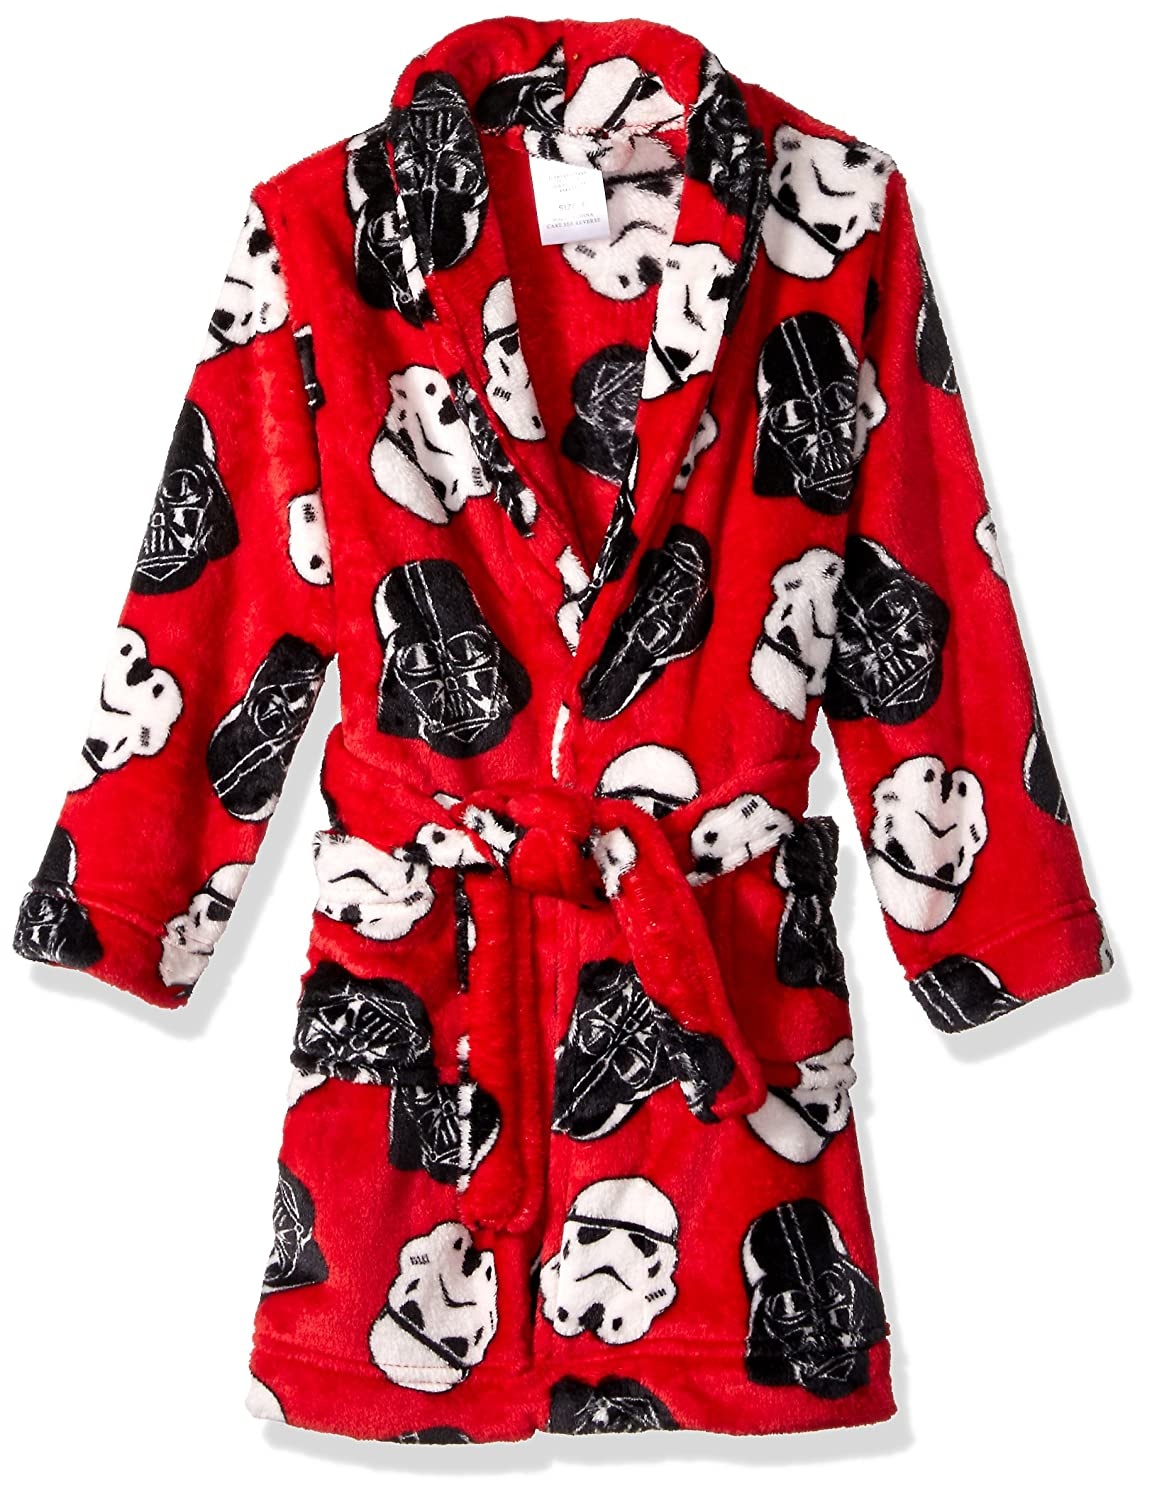 Star Wars Boys' Robe Star Wars Boys' Robe STBRD